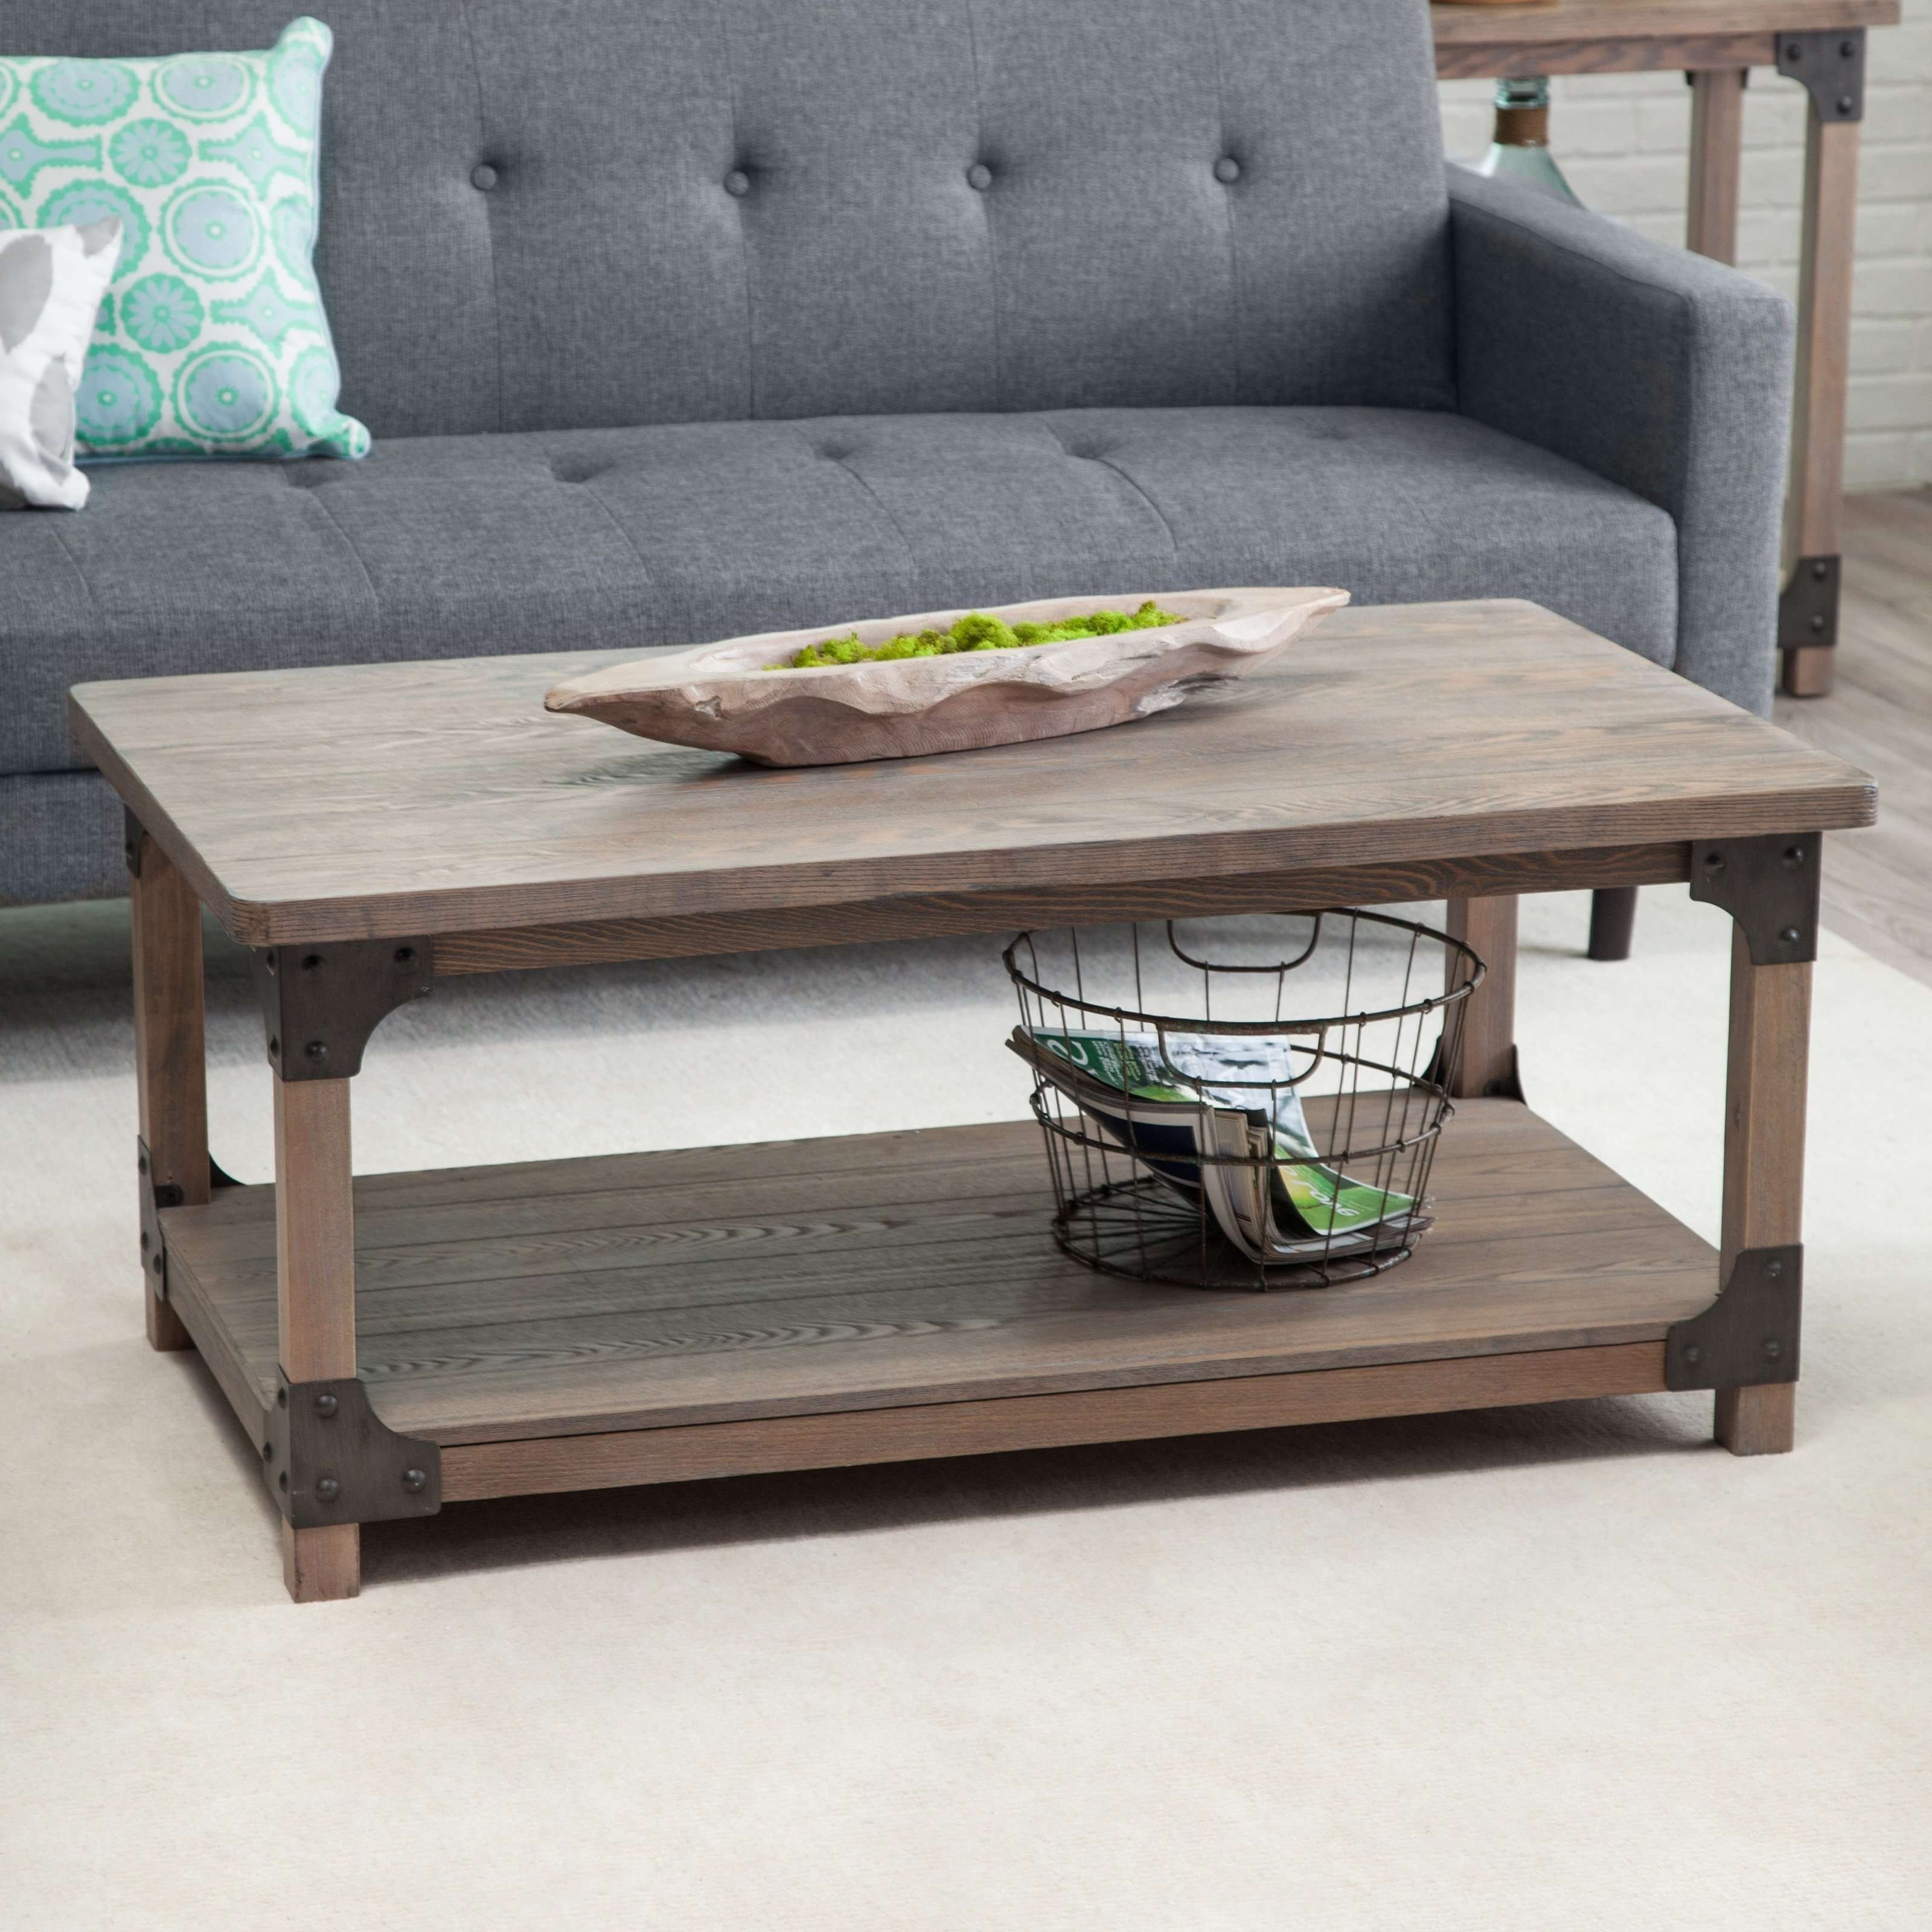 Coffee Table : Fabulous Rustic Coffee Table Southwestern Expansive Throughout Trendy Rustic Coffee Table Drawers (View 17 of 20)